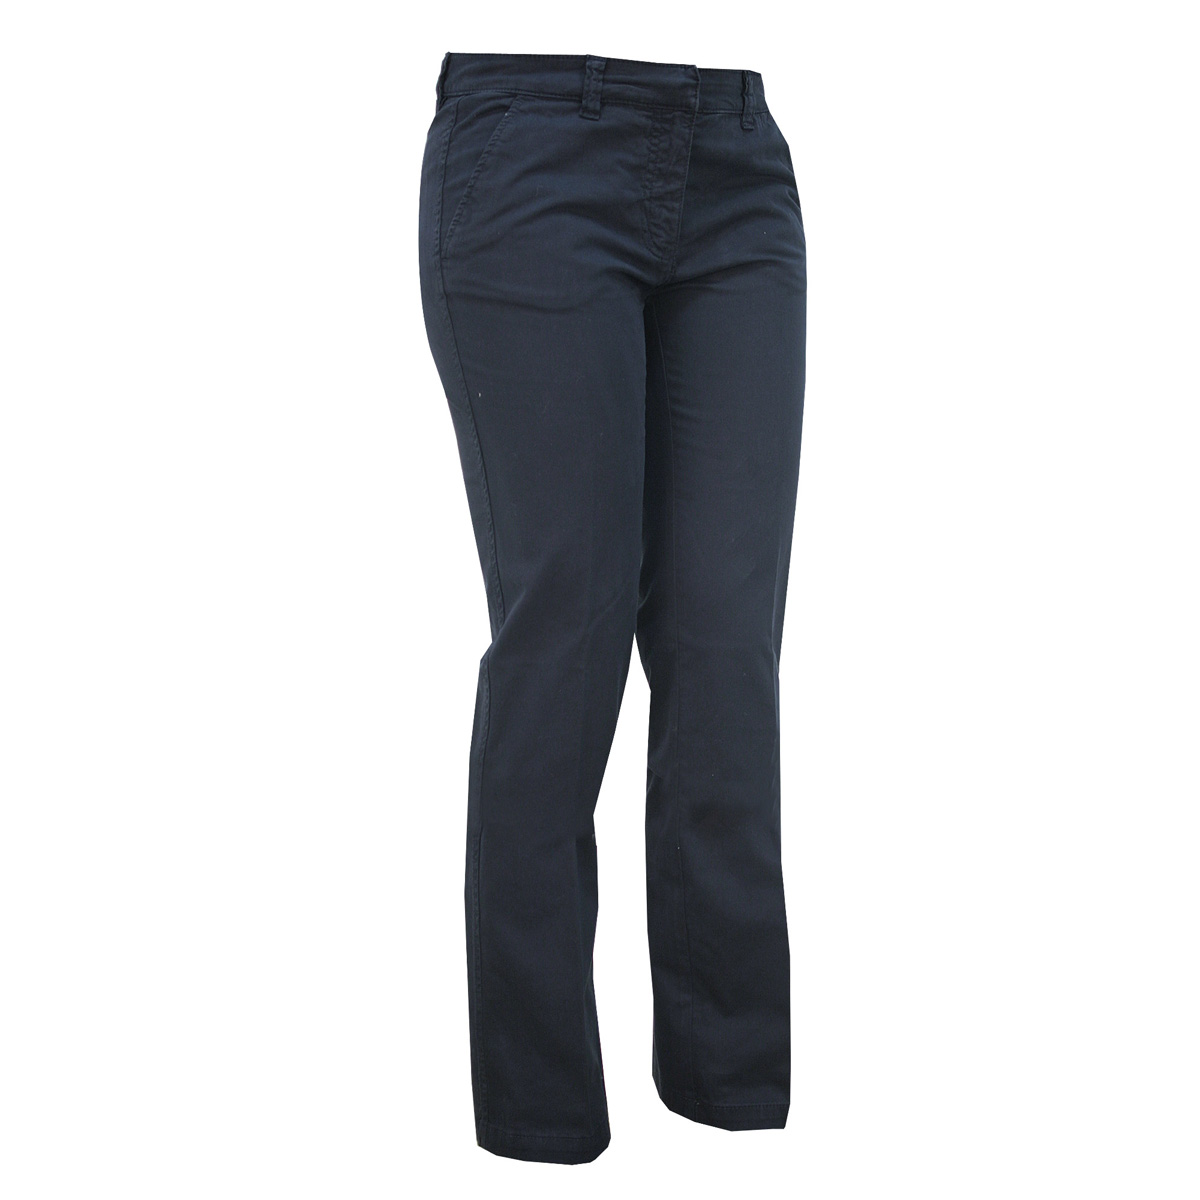 Margate Trouser - woman - navy